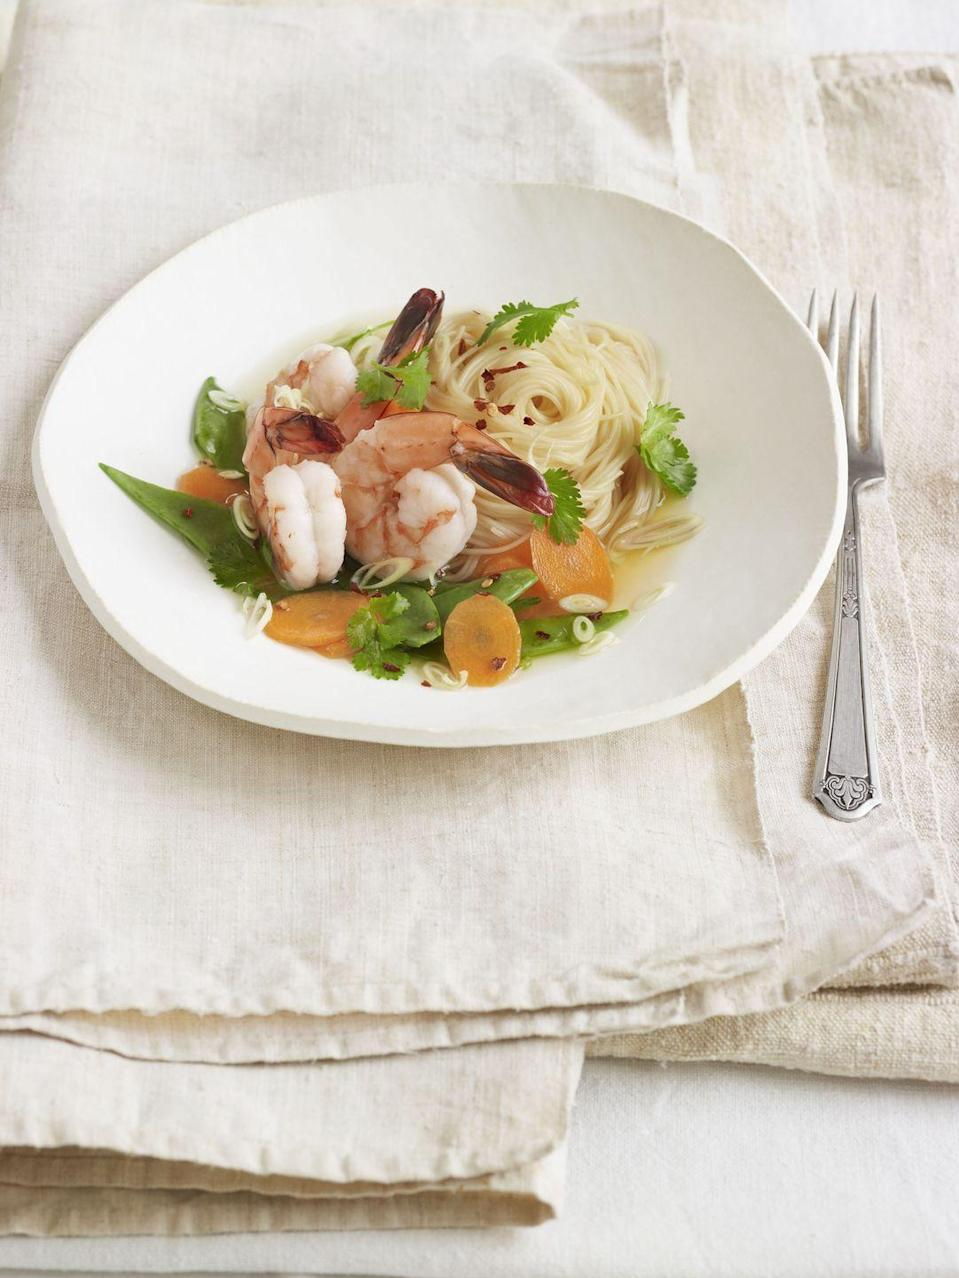 """<p>Plate this fortifying, Thai-inspired seafood dish in shallow bowls with a ladle of aromatic broth and a sprinkle of crushed red pepper. </p><p><strong><a href=""""https://www.countryliving.com/food-drinks/recipes/a4137/capellini-shrimp-lemongrass-ginger-broth-recipe-clv0512/"""" rel=""""nofollow noopener"""" target=""""_blank"""" data-ylk=""""slk:Get the recipe."""" class=""""link rapid-noclick-resp"""">Get the recipe.</a></strong></p>"""